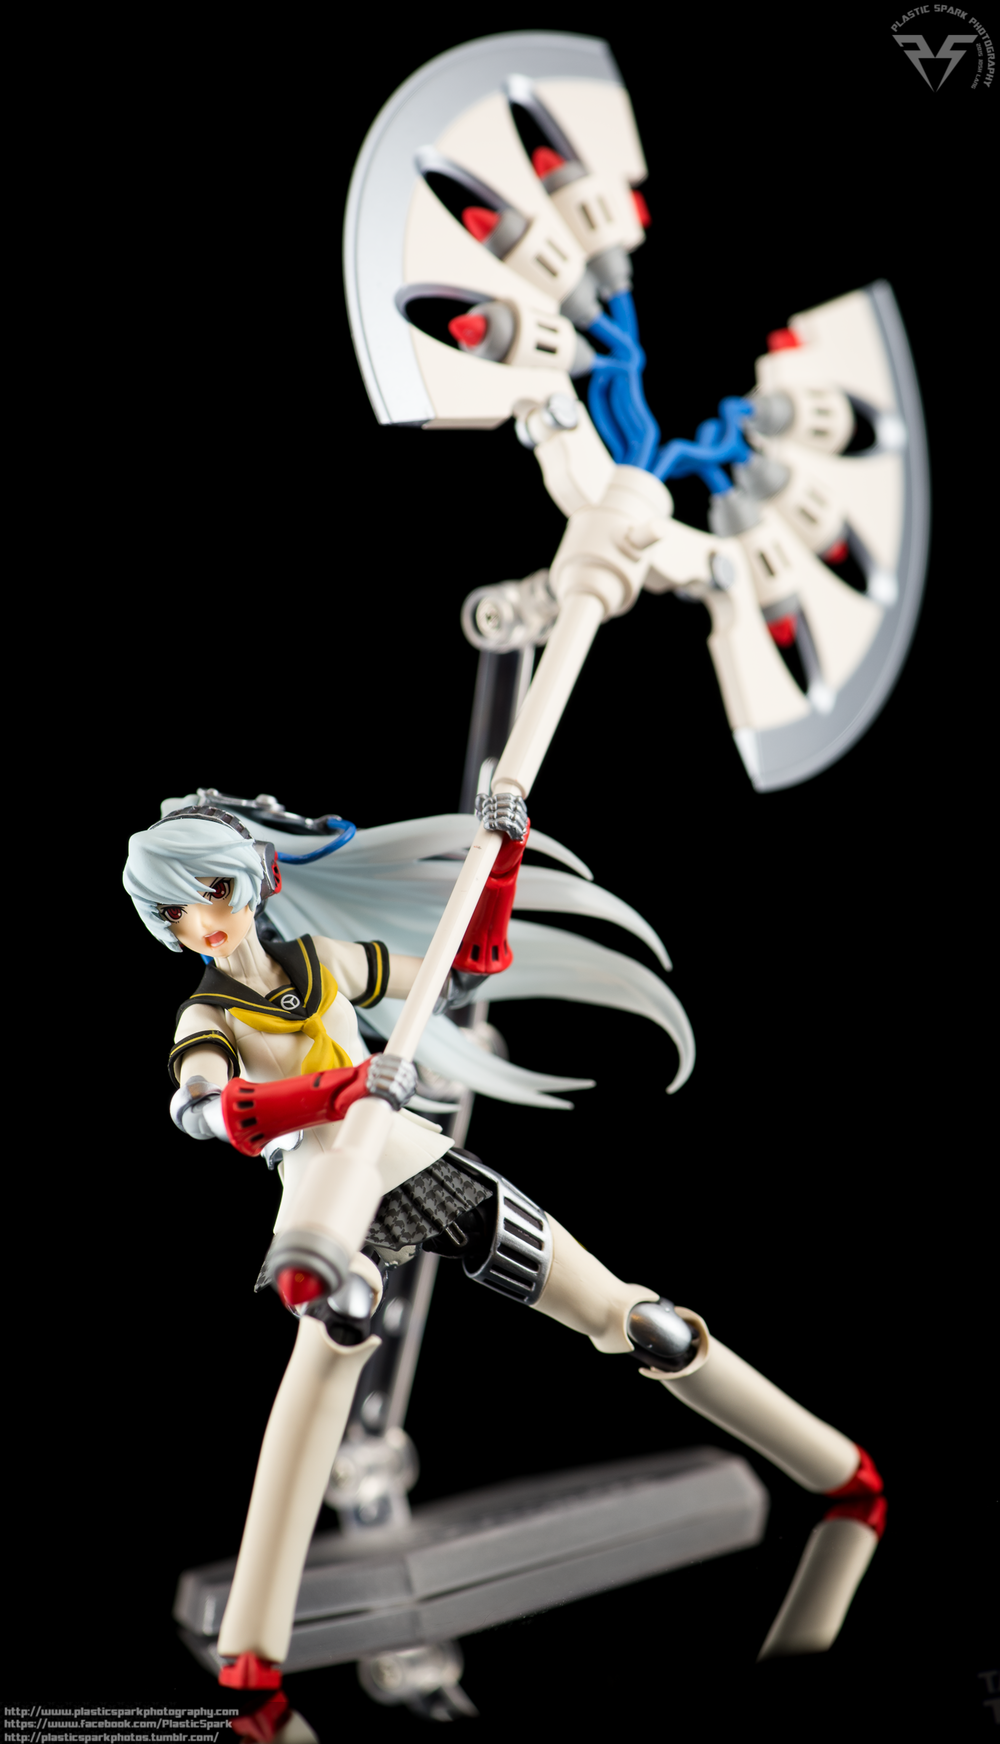 Figma-Labrys-(4-of-33).png